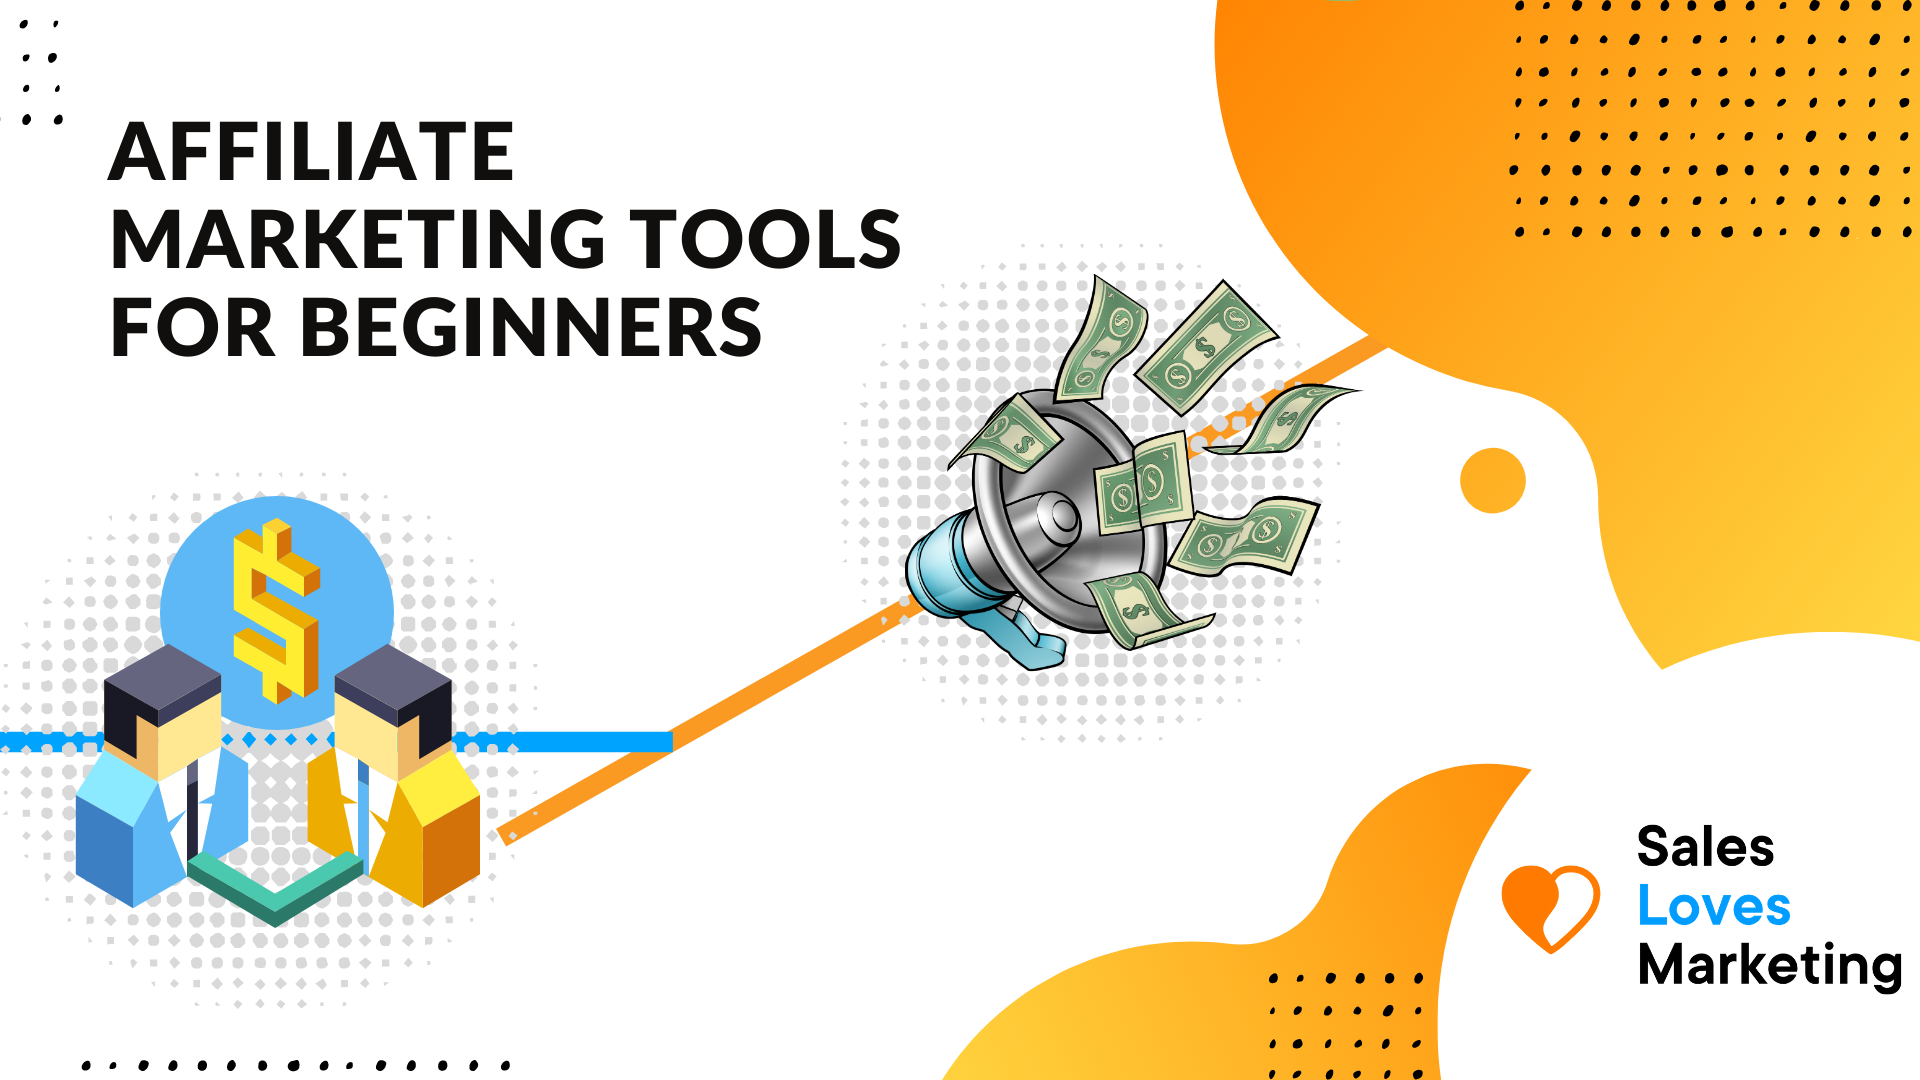 Which tools should you use as an affiliate marketer